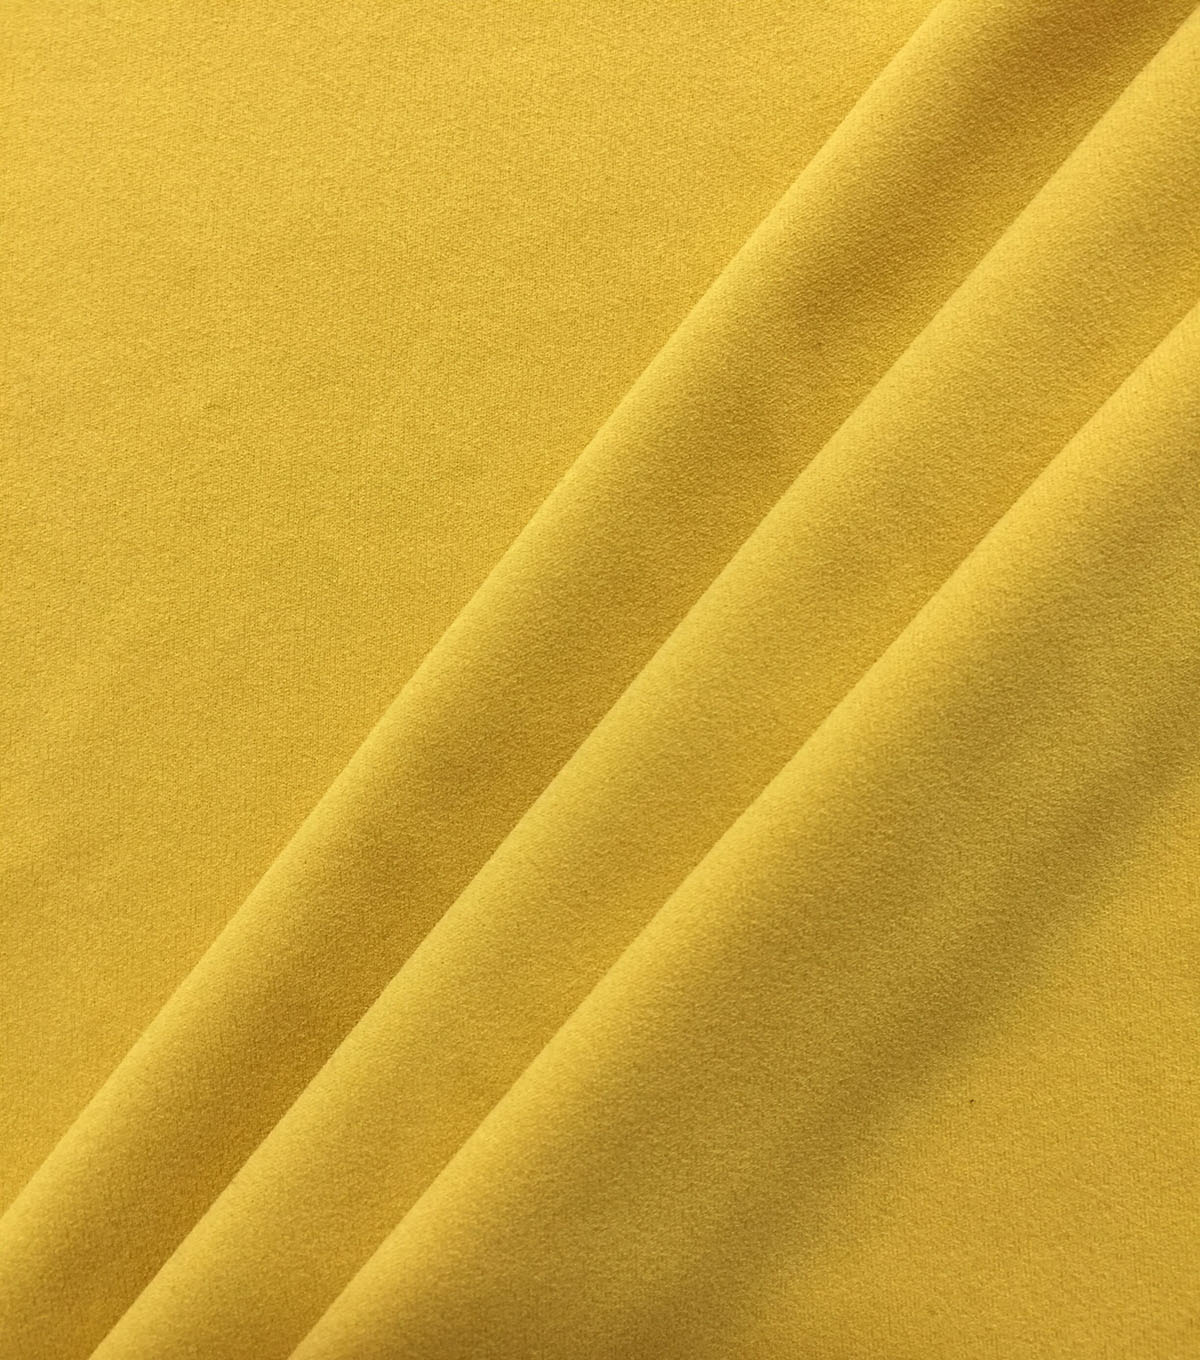 Spring Garden Solid Stretch Knit Crepe Fabric-Mimosa